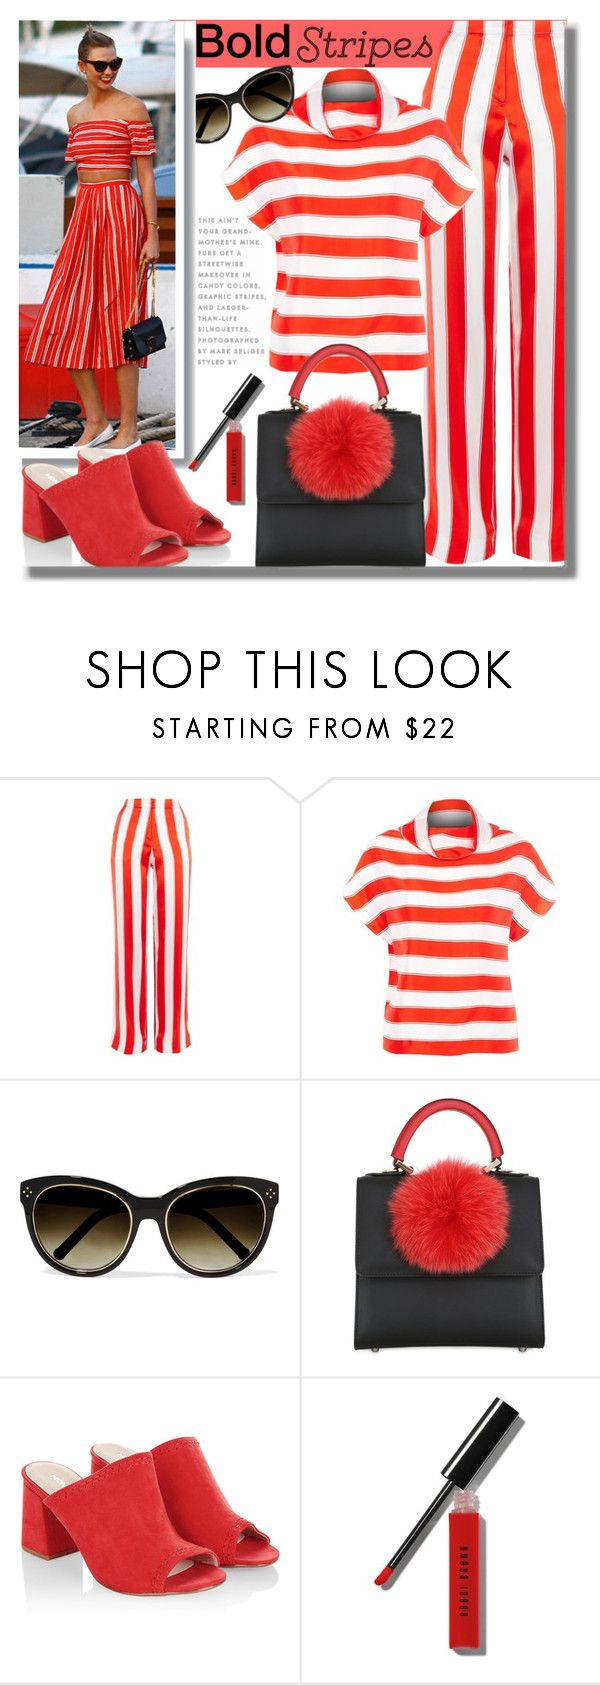 """#333 ~ Strong Stripes: Graphic Striped Pants"" by cresentia-titi ❤ liked on Polyvore featuring Topshop, Chloé, Les Petits Joueurs, Monsoon, Bobbi Brown Cosmetics, stripedpants and 27"